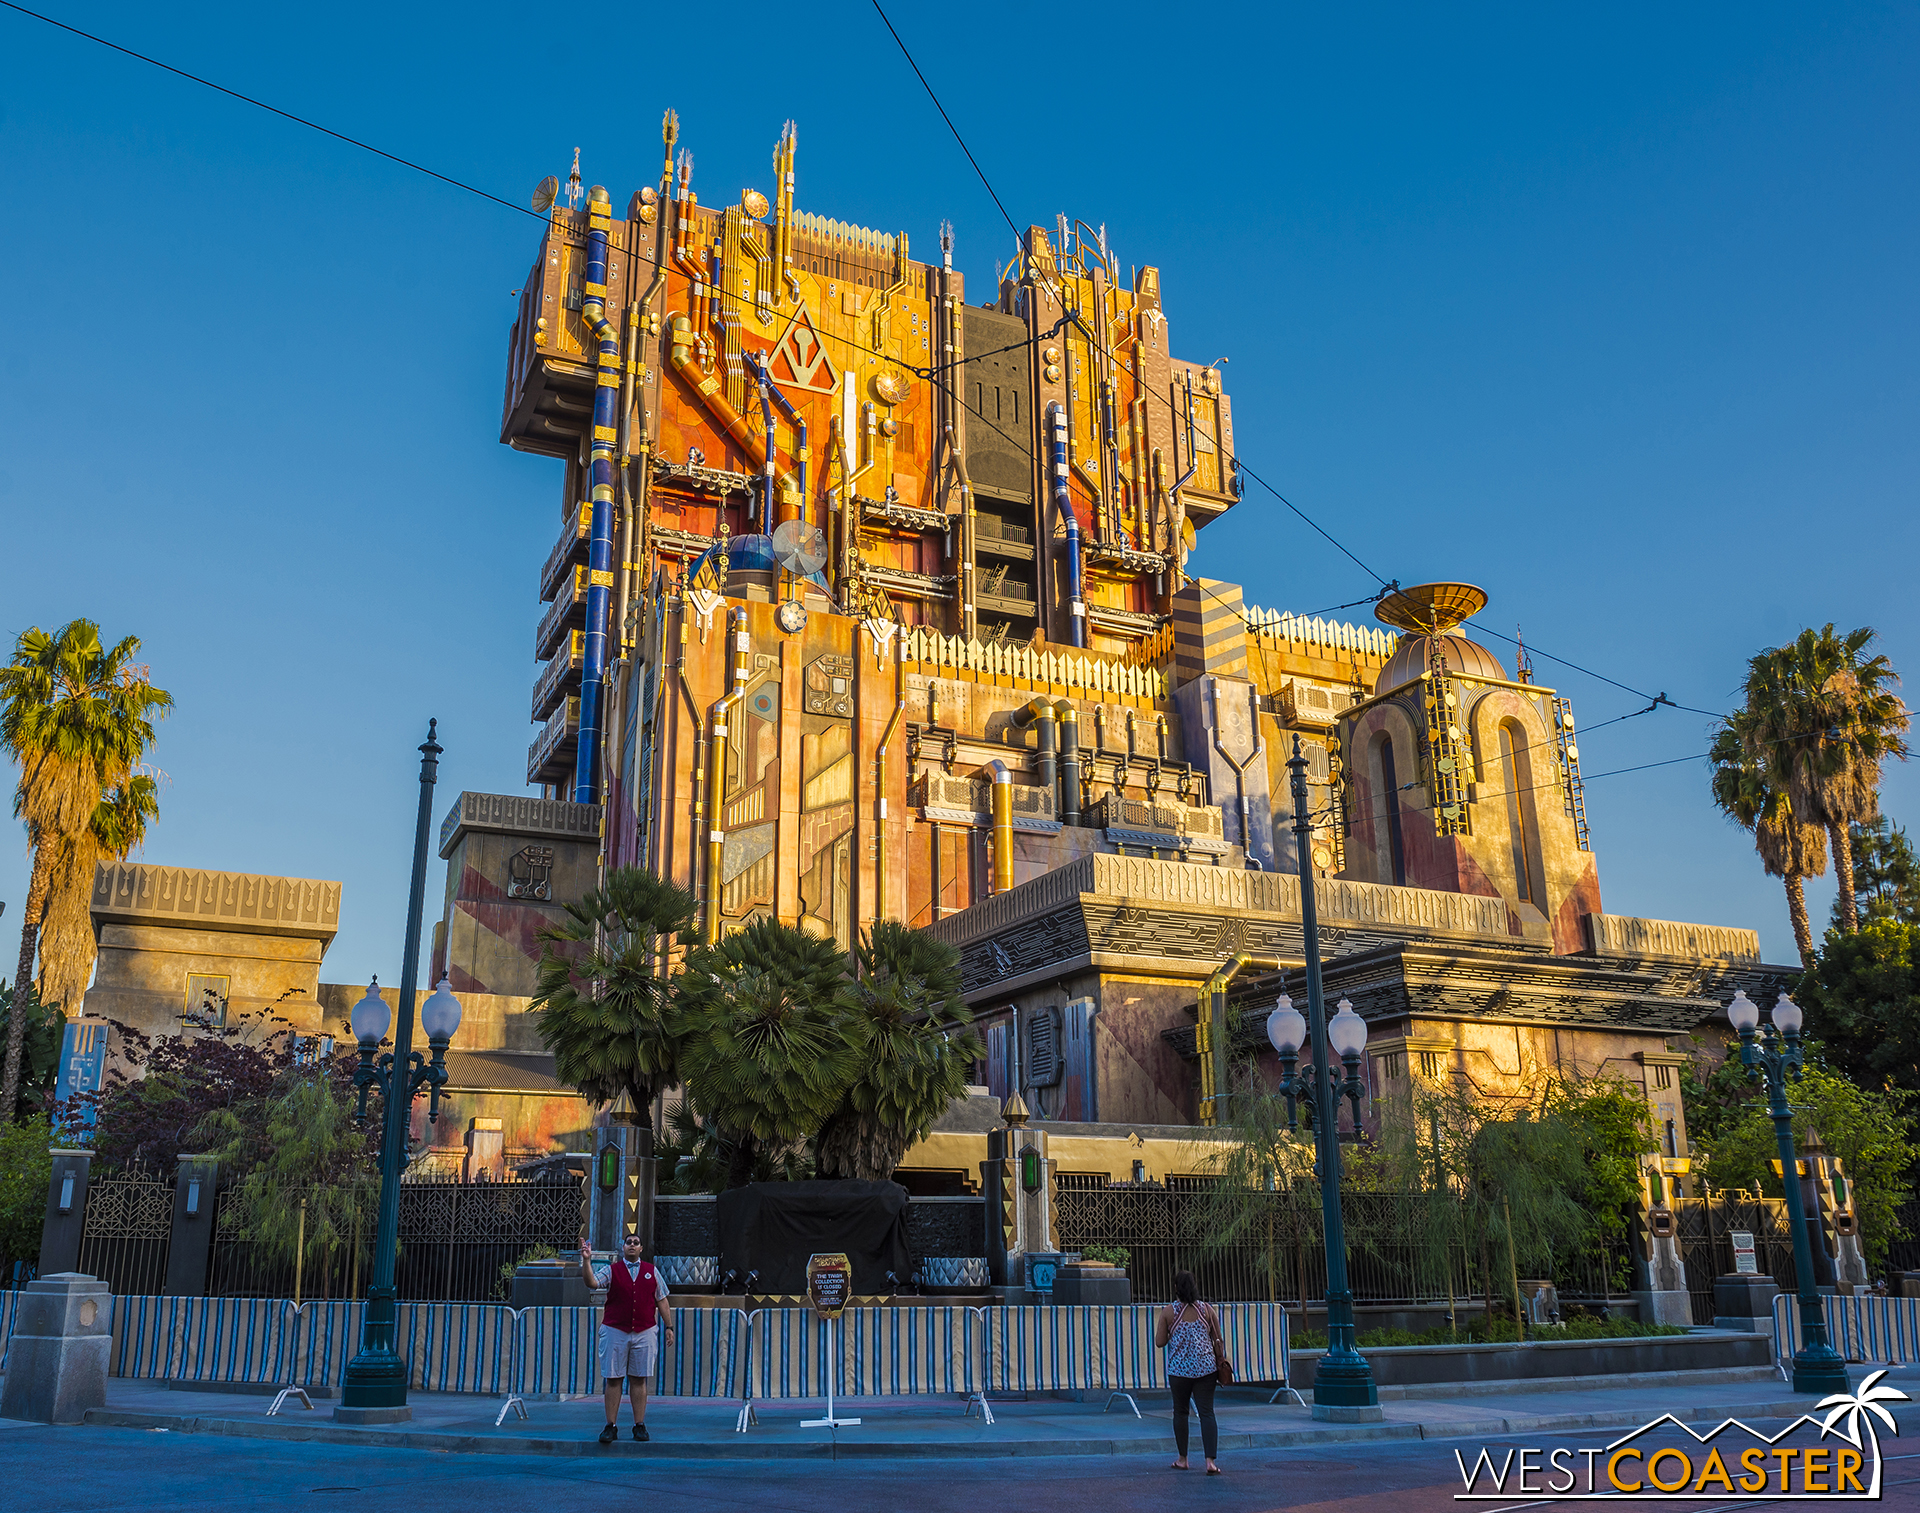 """This remodel has certainly inspired a lot of... """"spirited"""" discussion about the direction of Disney attractions and intellectual properties."""